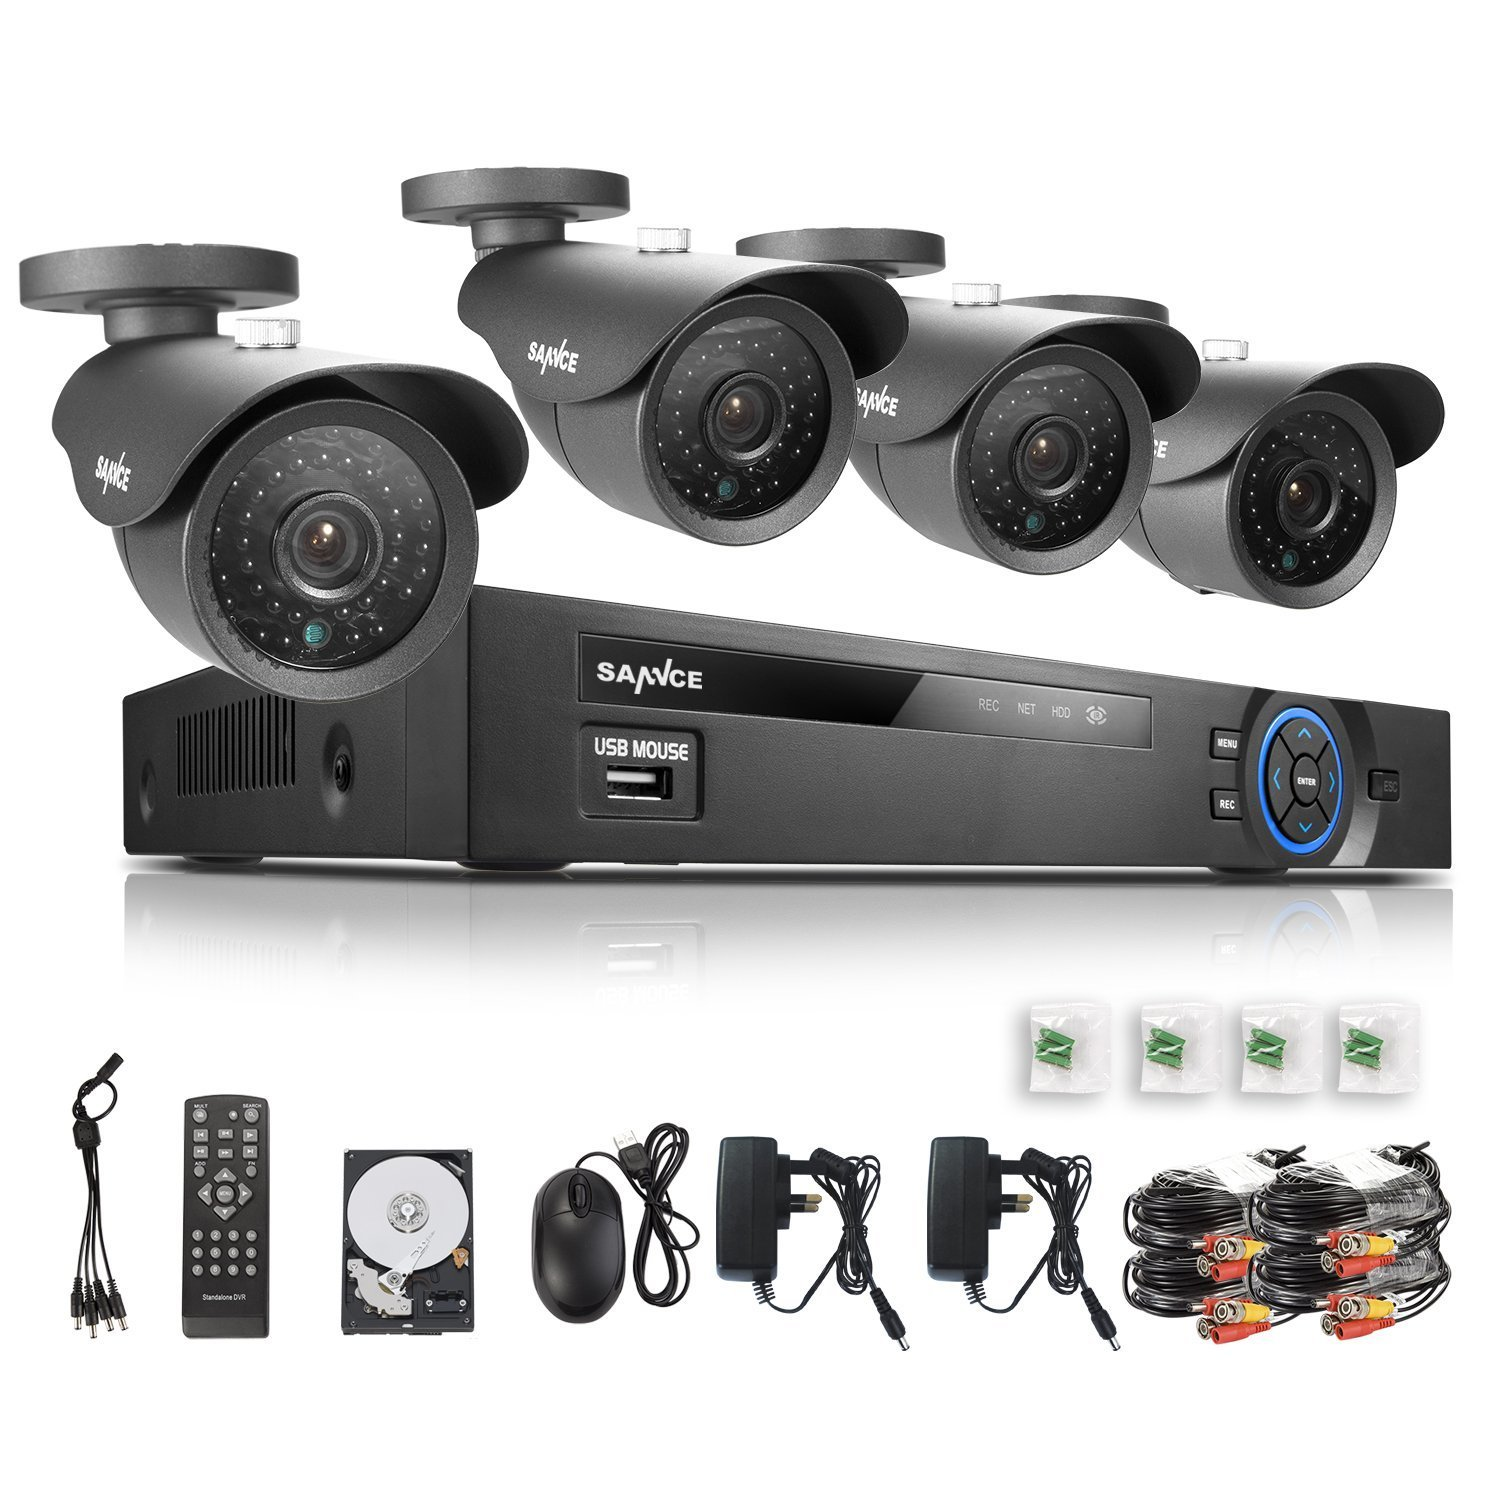 Budget All-In-One Security Camera Kit -SANNCE CCTV - Best